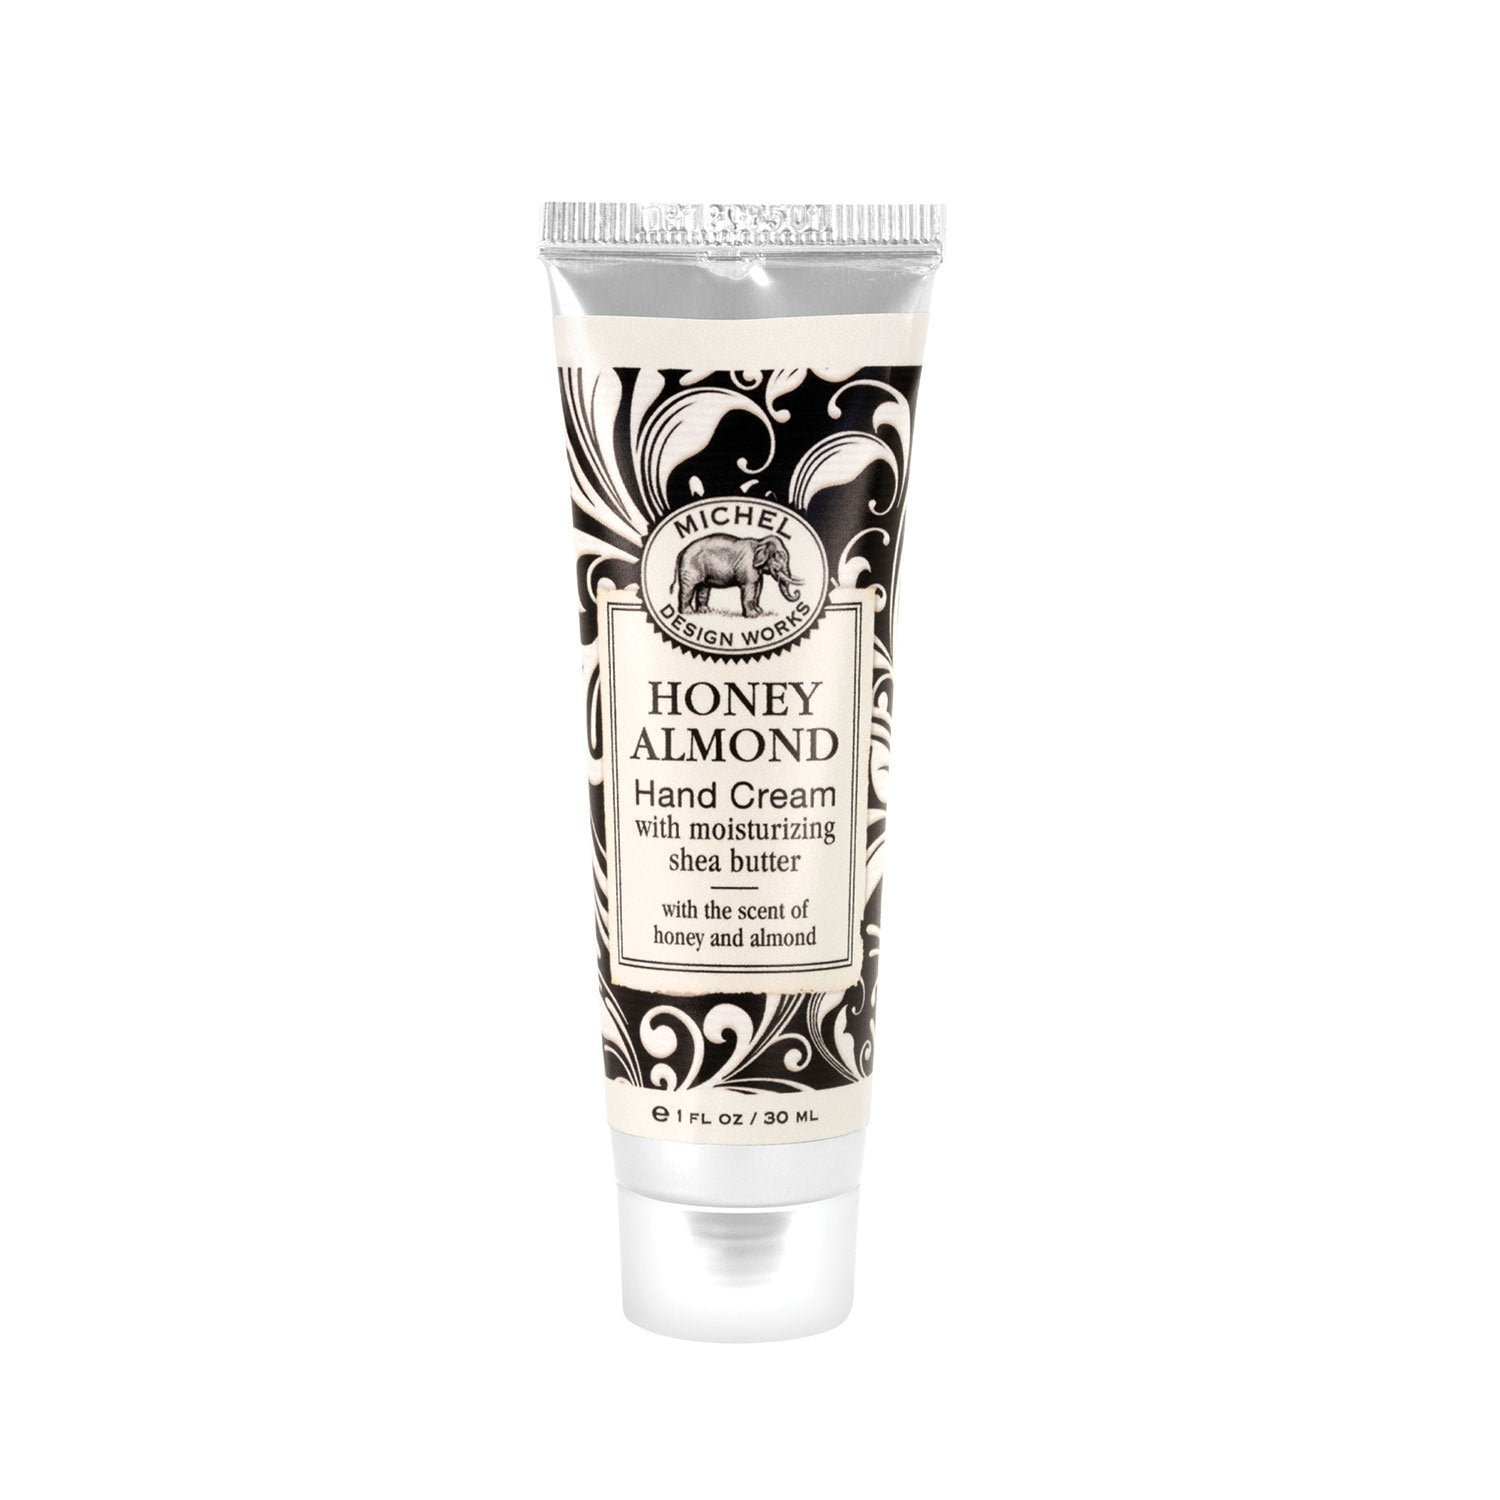 HONEY ALMOND HAND CREAM HCS07 - Molly's! A Chic and Unique Boutique